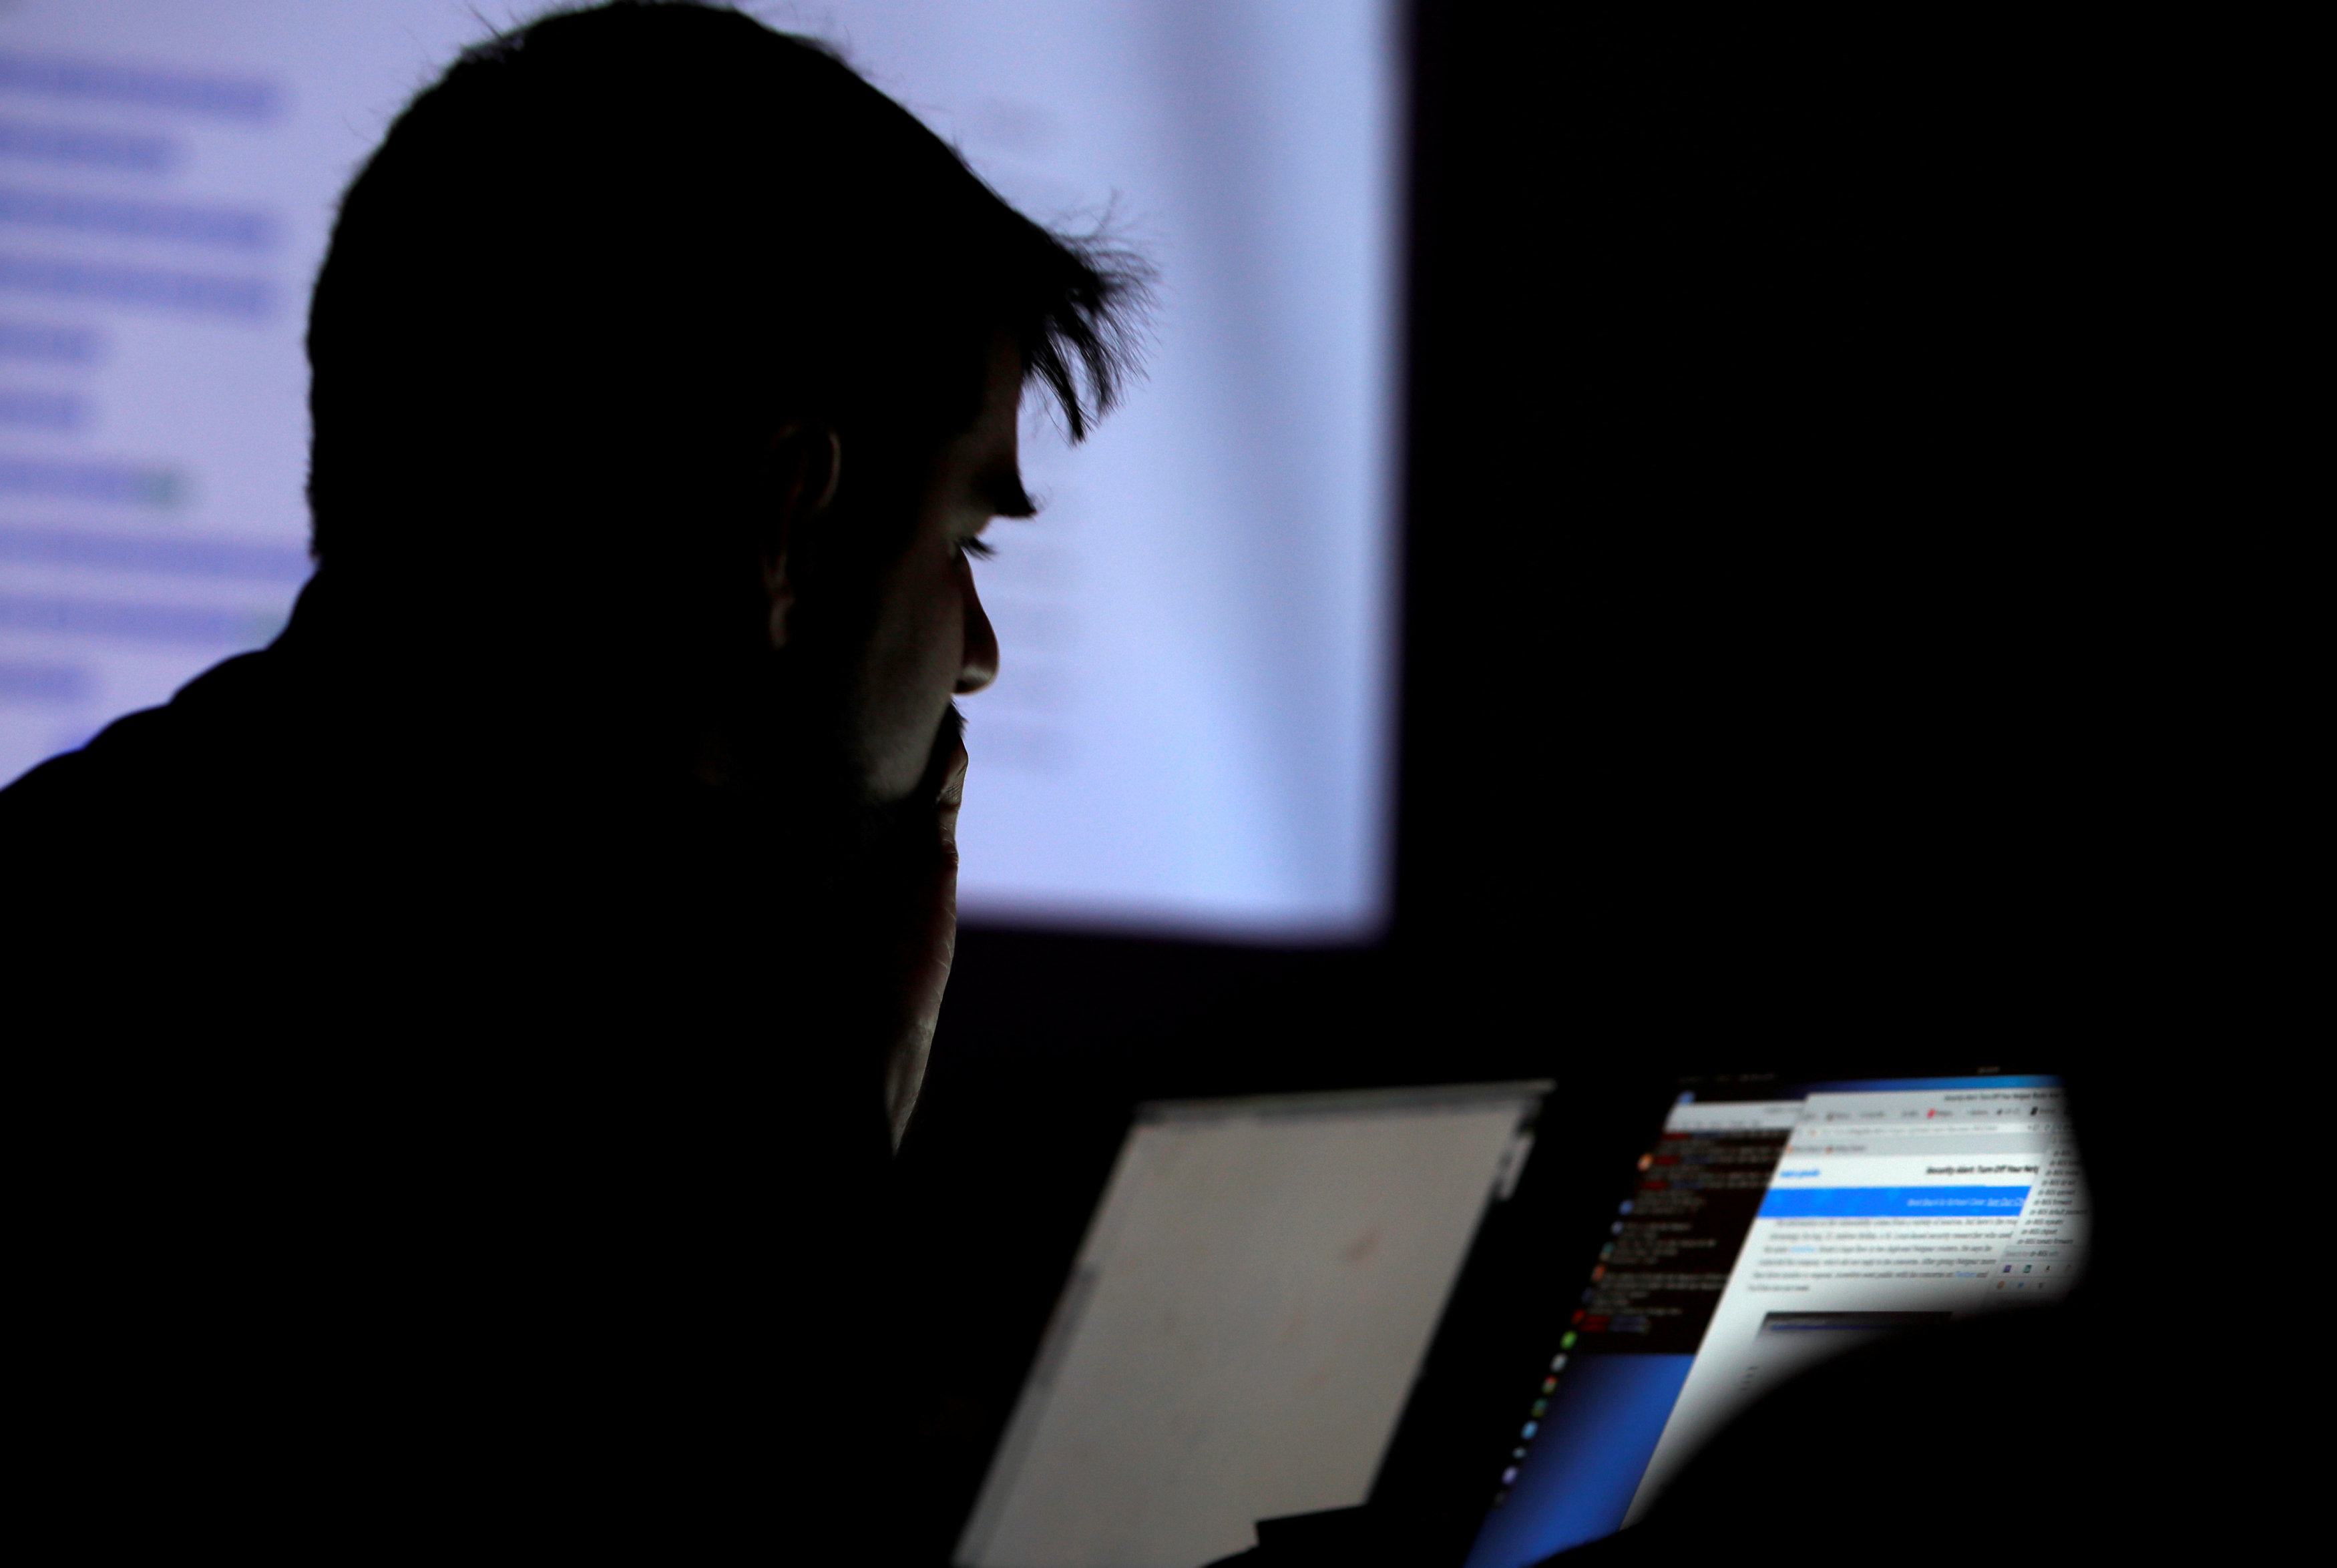 FILE PHOTO: A man takes part in a hacking contest during the Def Con hacker convention in Las Vegas, Nevada, U.S. on July 29, 2017. REUTERS/Steve Marcus/File Photo